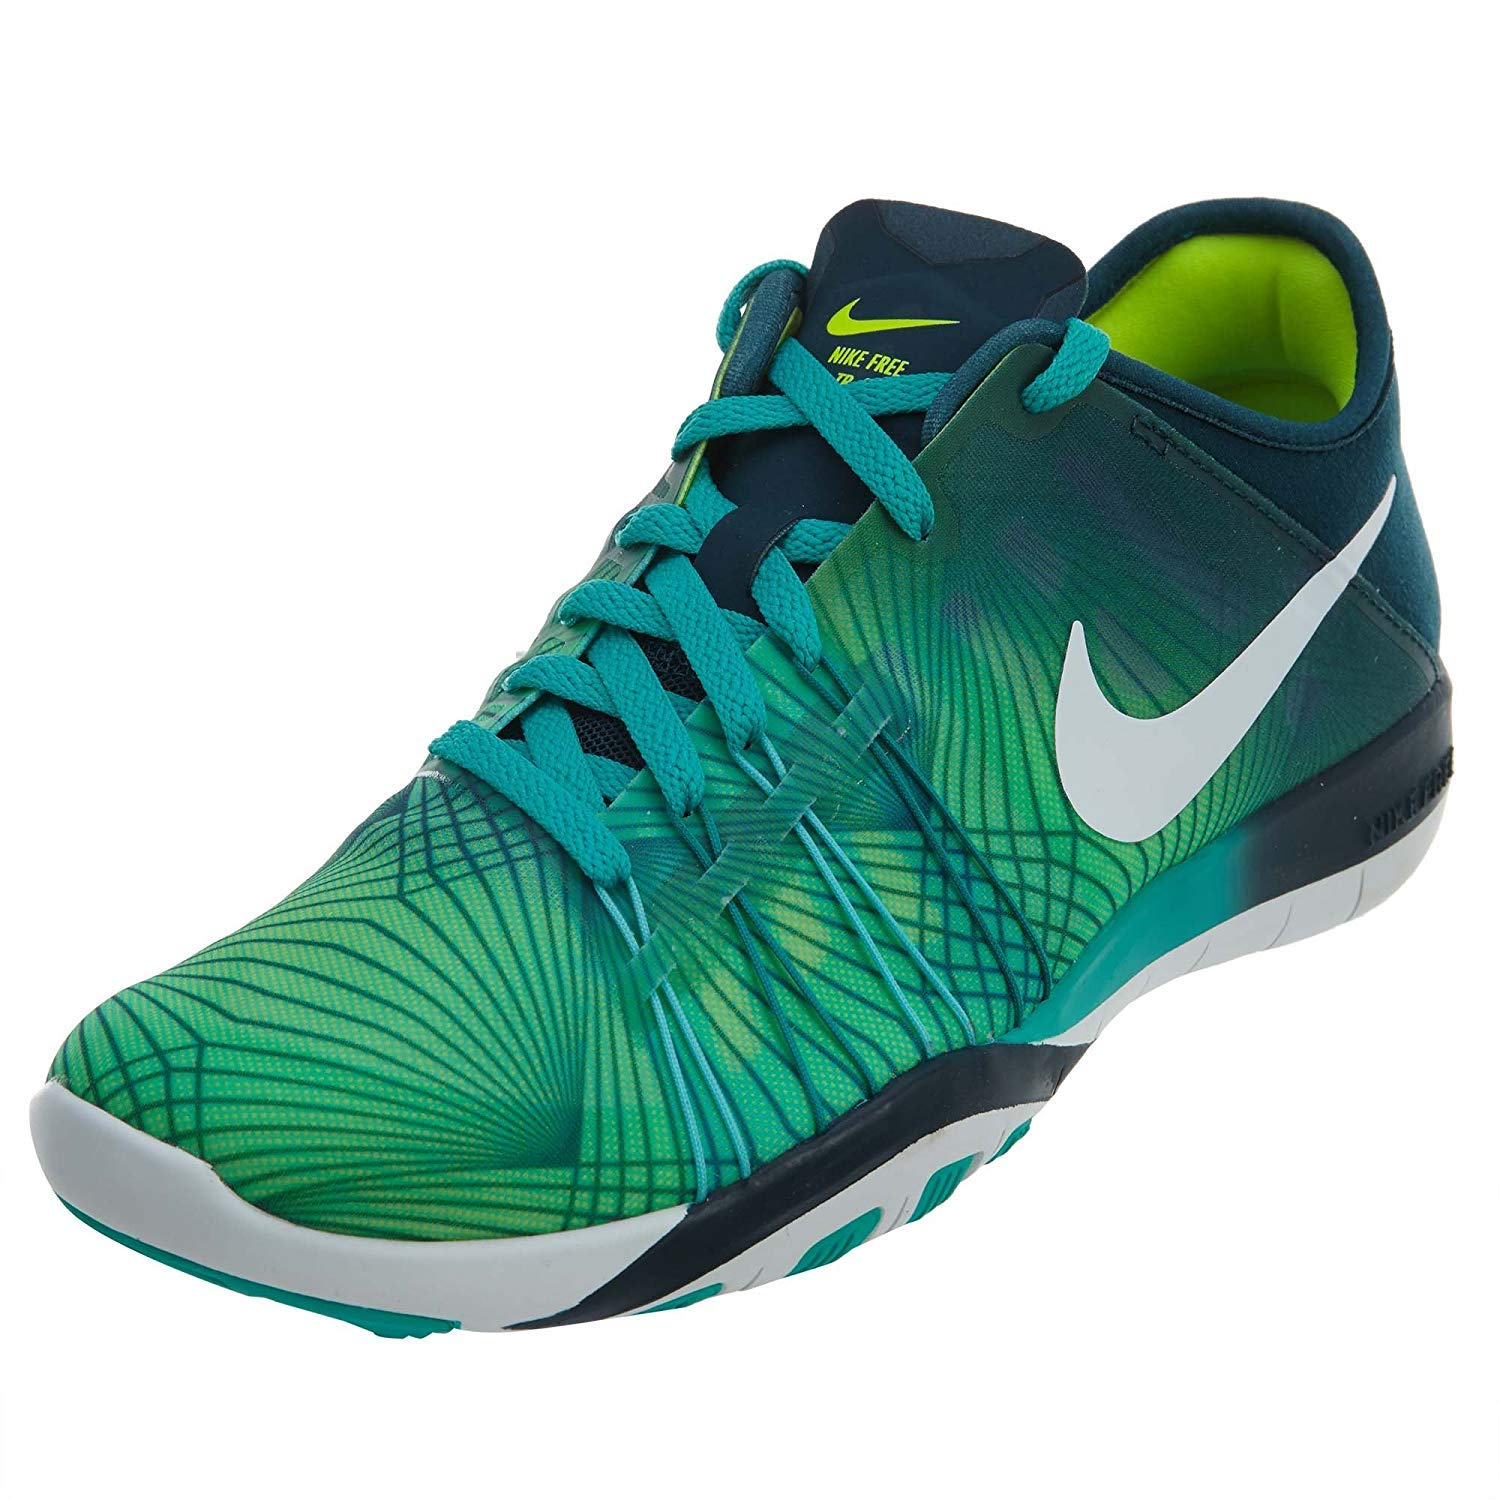 brand new 6c7f9 58be0 Amazon.com   NIKE WOMEN Free TR 6 Print Clear Jade White Mid Turquoise Volt  833424-300 size 6   Running